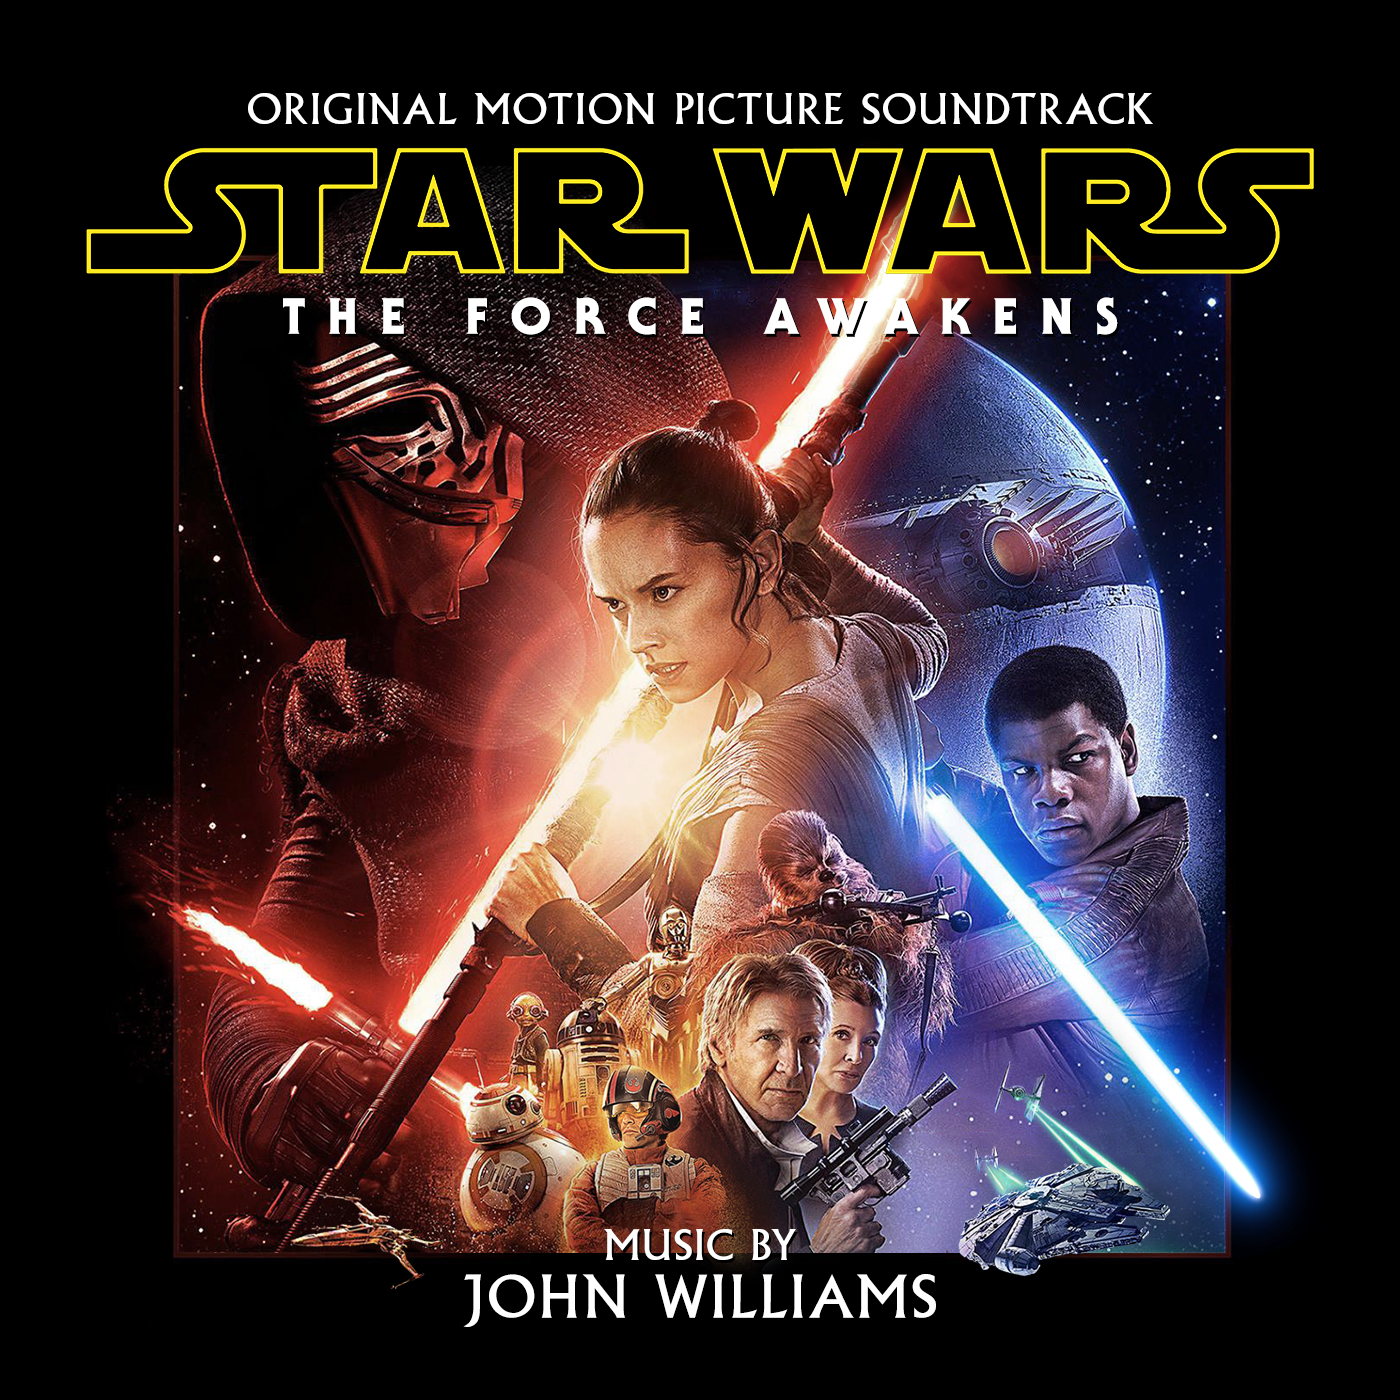 Star Wars The Force Awakens Ost By Anakin022 On Deviantart